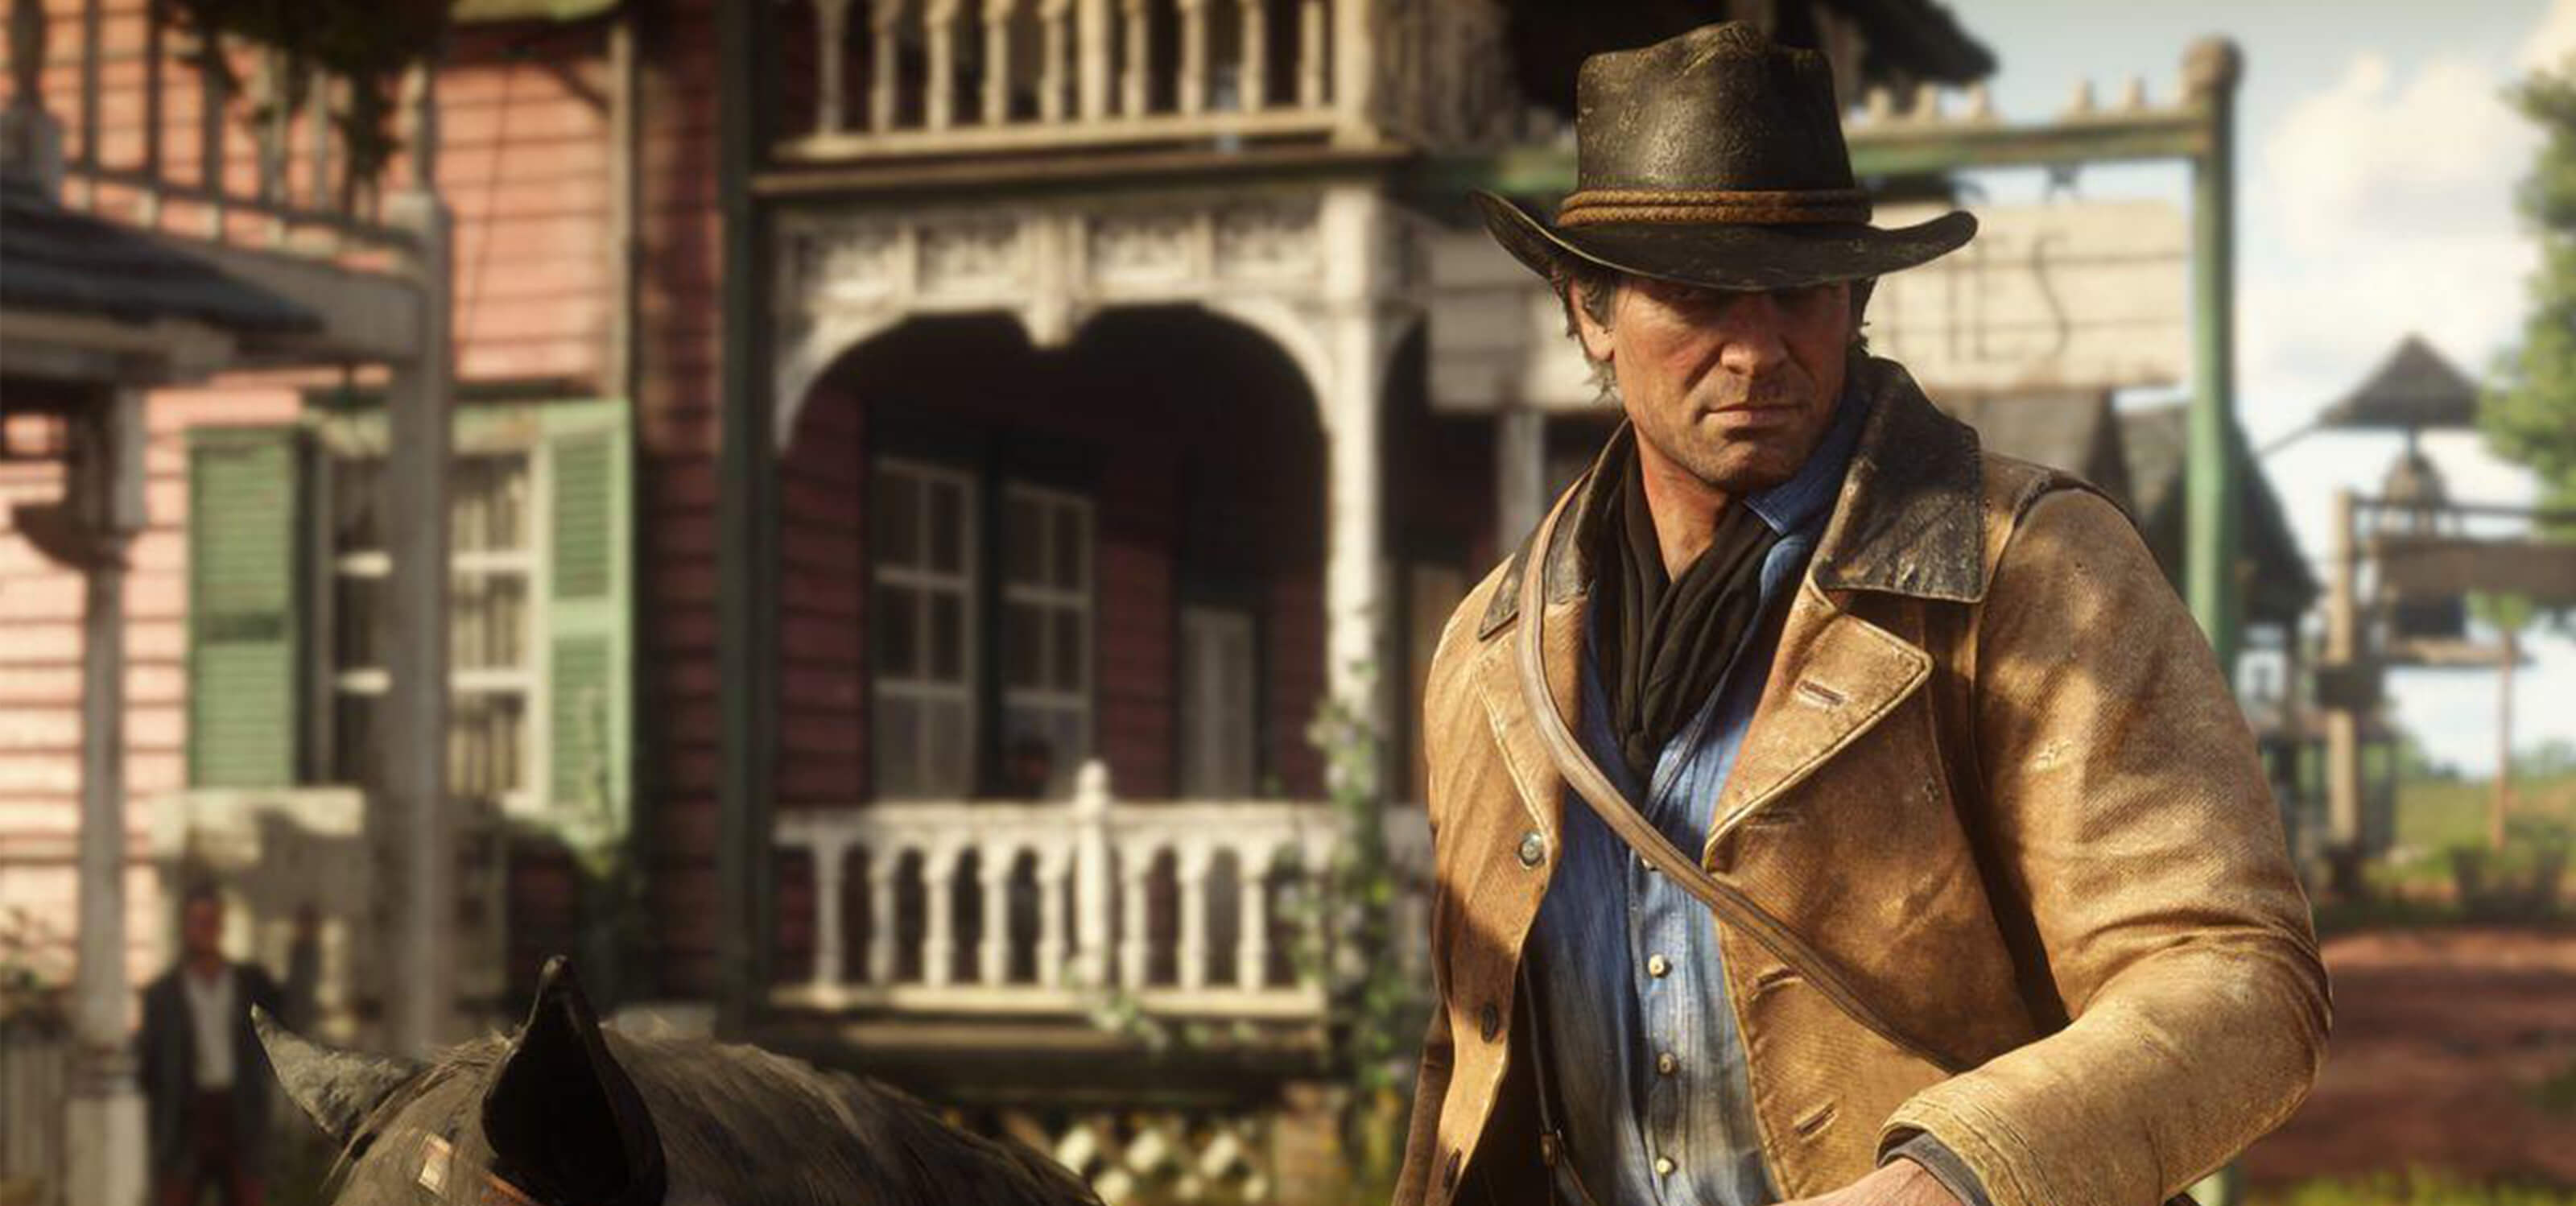 d505934d1e3f3 DigiPen Grad Andy Kibler Puts the Clothes on the Cowboy in Red Dead  Redemption 2